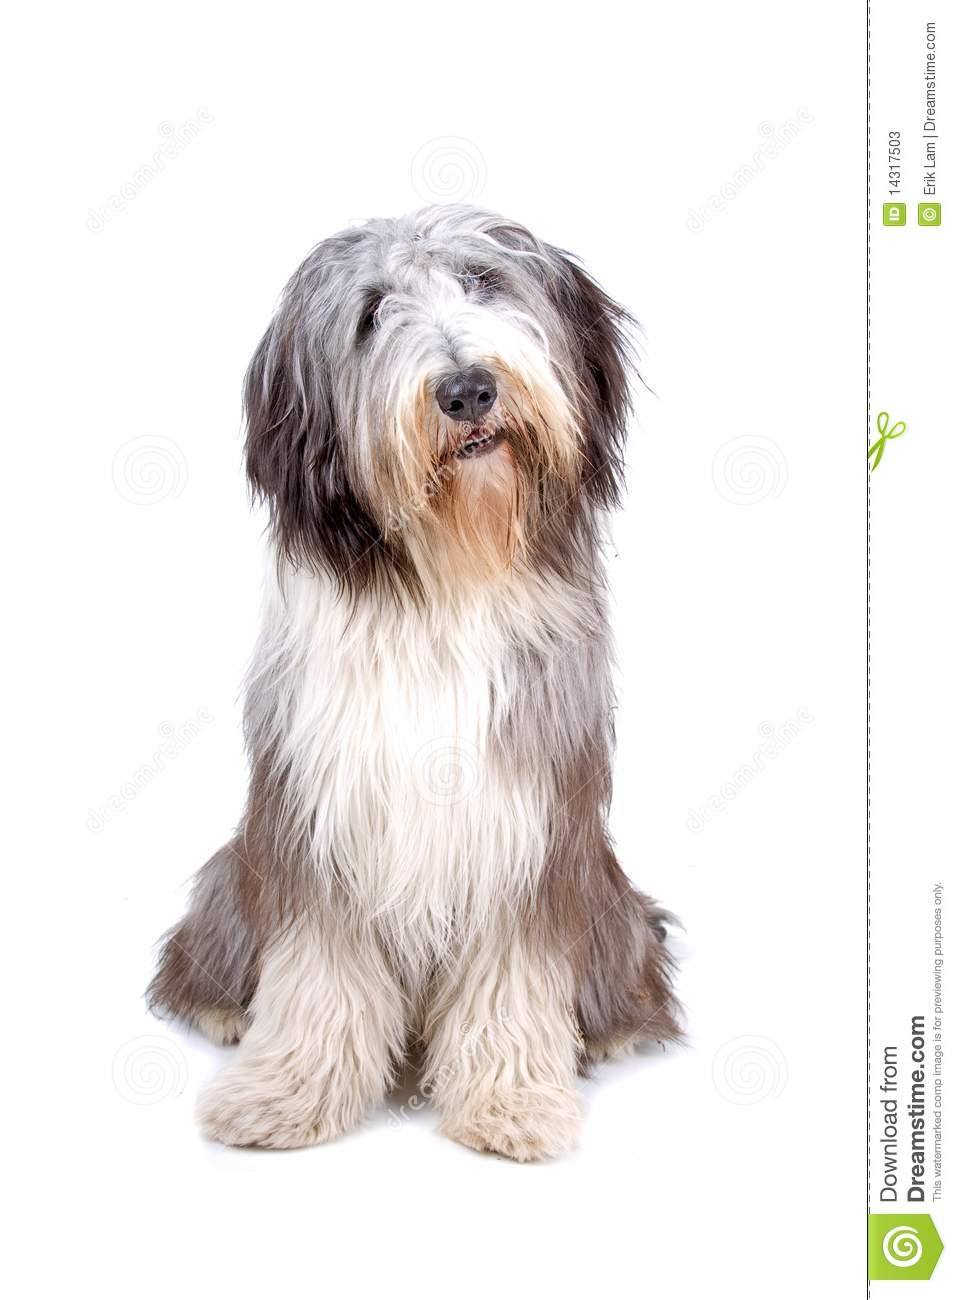 Bearded Collie clipart #9, Download drawings